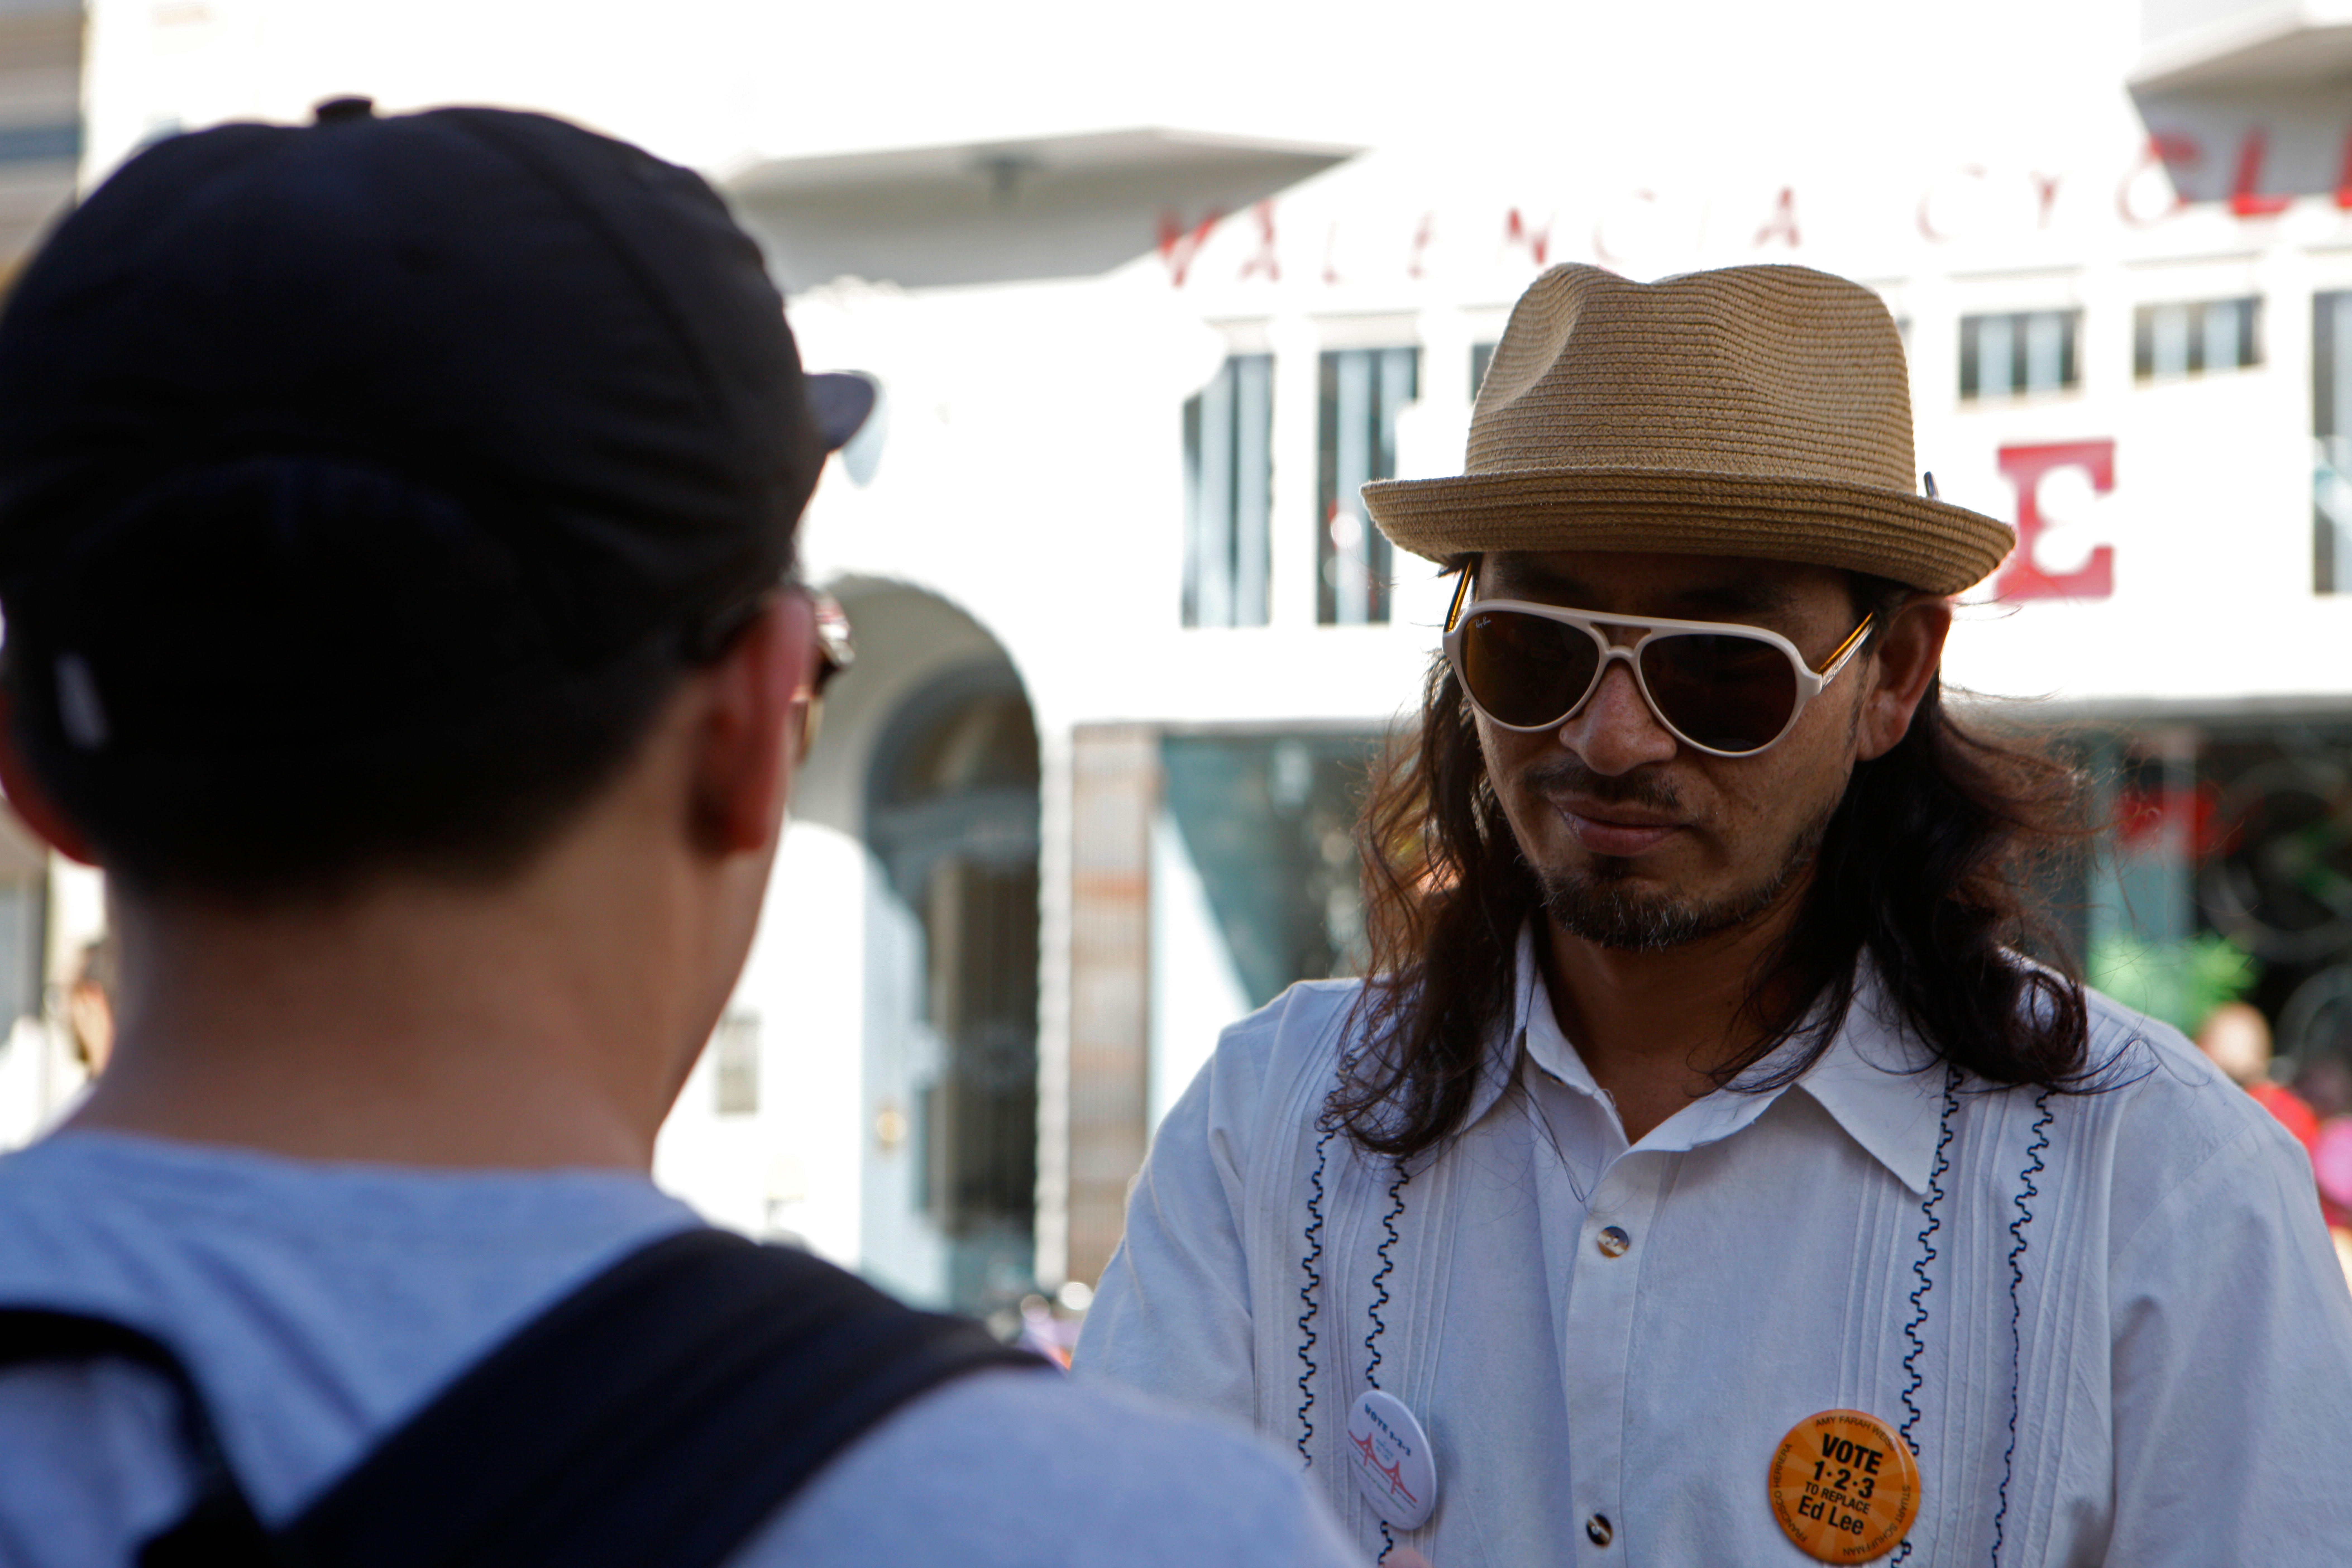 """Local rapper and former City College student Equipto hands out information and talks to people about the """"Vote 1-2-3 To Replace Ed Lee"""" campaign during Sunday Streets on Valencia Street on Sunday, Oct. 18, 2015. (Photo by Franchon Smith/The Guardsman)"""